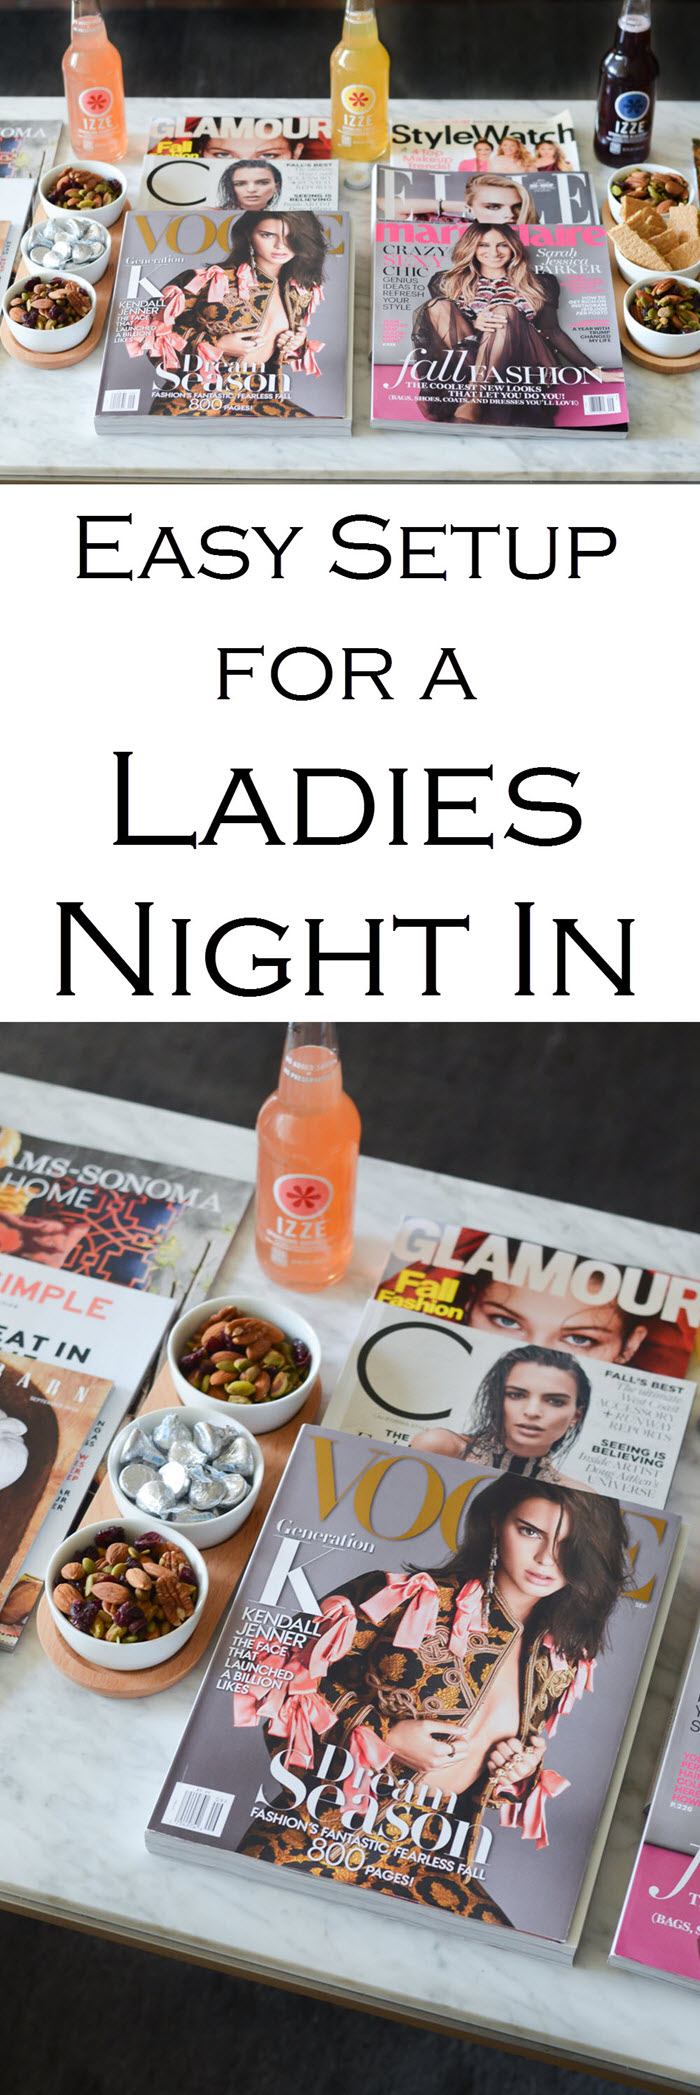 Easy setup for a Ladies Night in with Friends. Fall Fashion Magazine Party w. Friends